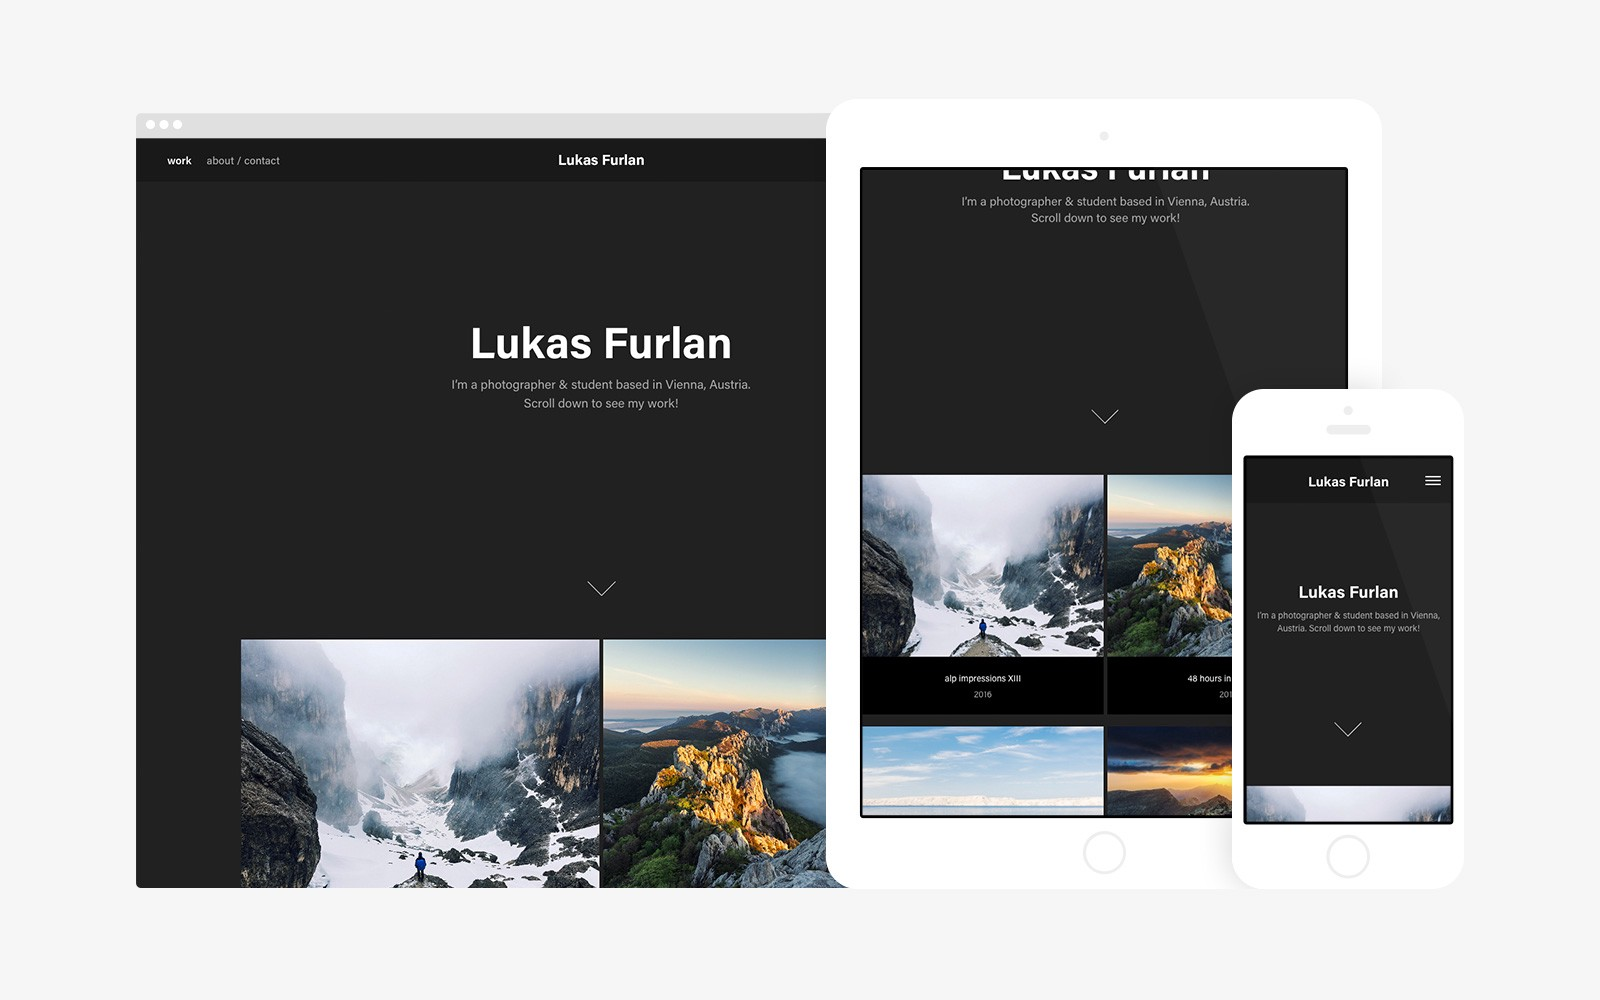 Lukas: A New Picture Perfect Theme